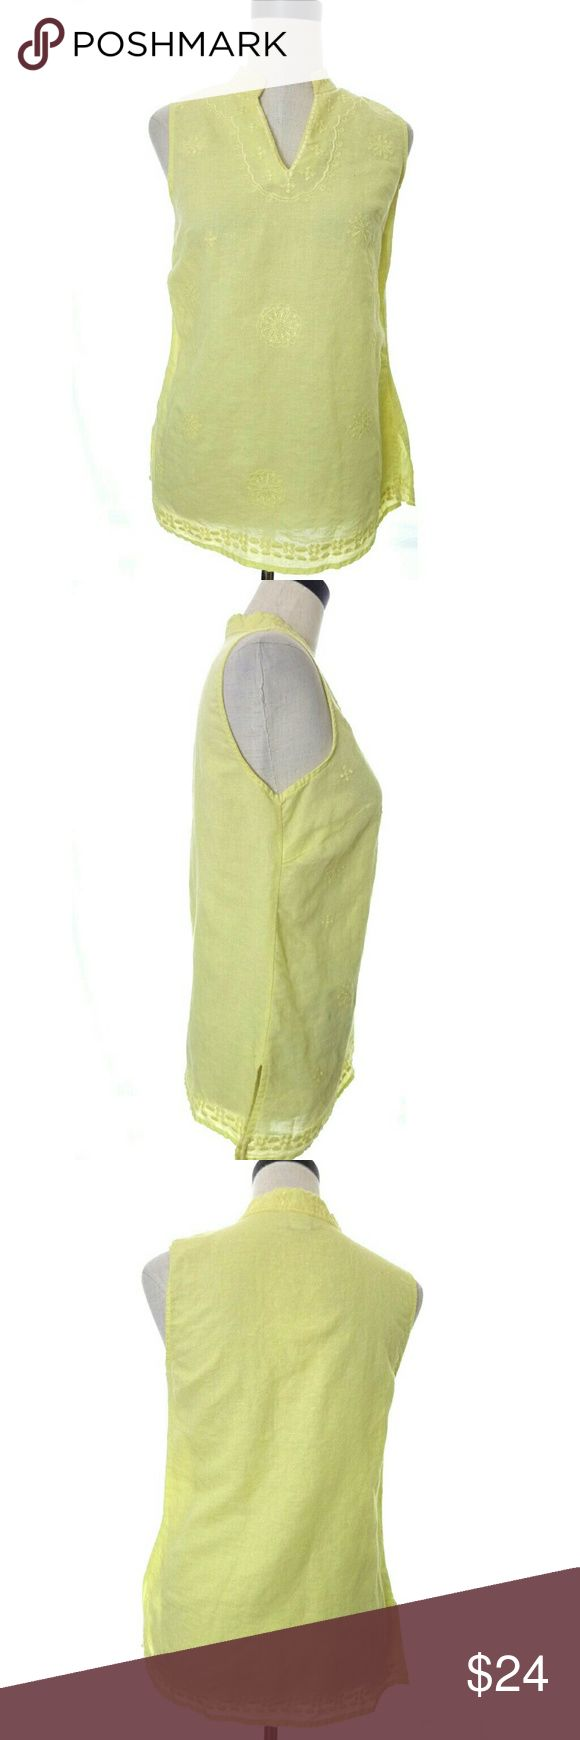 """David Brooks Linen Top Size: Small  Size Type: Regular  Material: 55% Linen, 45% Cotton.  Measurements: Armpit to armpit is 17"""" across when flat. Shoulder to hem is 25"""".  Condition: Excellent used condition. No holes or stains.  Details: Lightweight embroidered yellow sleeveless linen blend top by David Brooks.  wt2958 David Brooks Tops Blouses"""